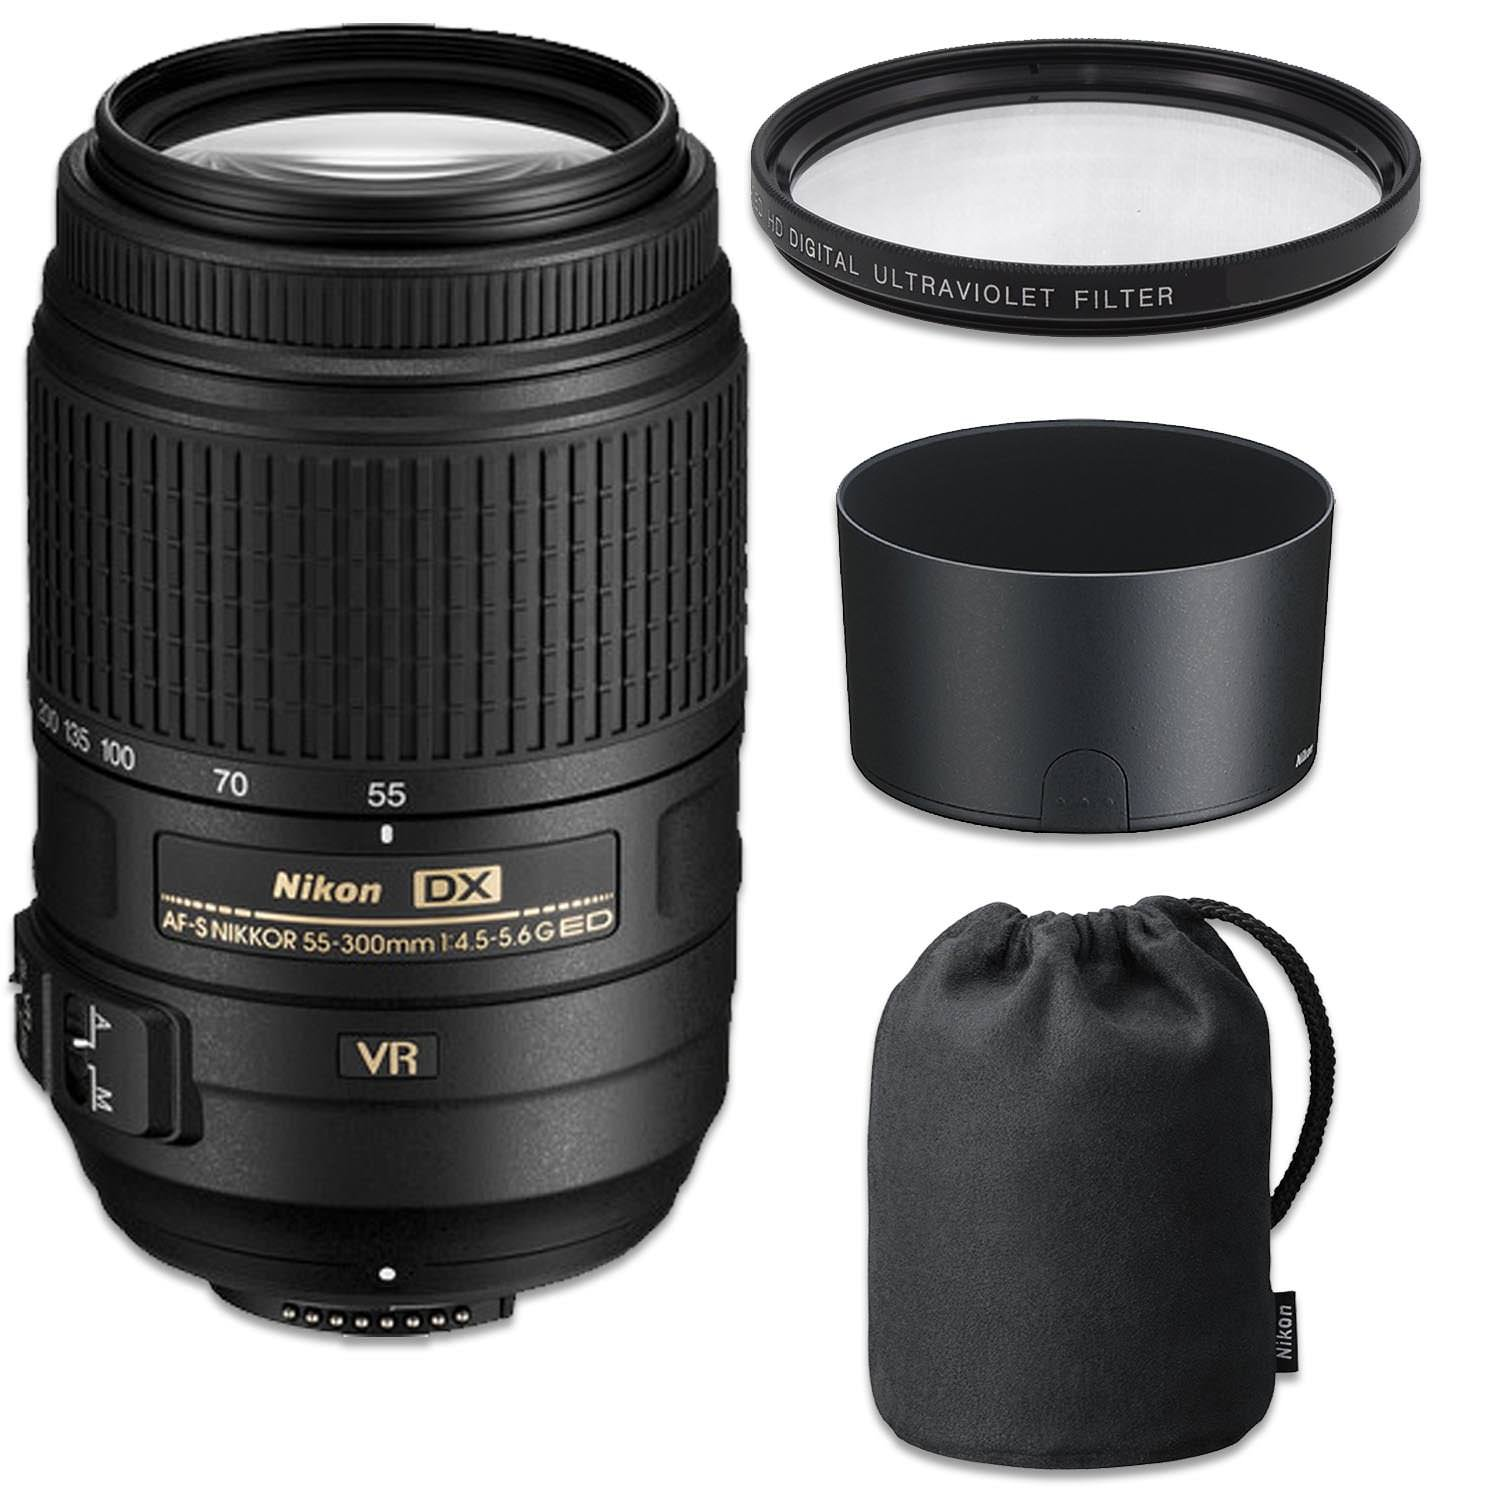 Nikon AF-S DX NIKKOR 55-300mm f/4.5-5.6G ED VR Lens with HB-57 Snap On Hood, CL-1020 Flexible Lens Case and 58mm UV Filter (Certified Refurbished)